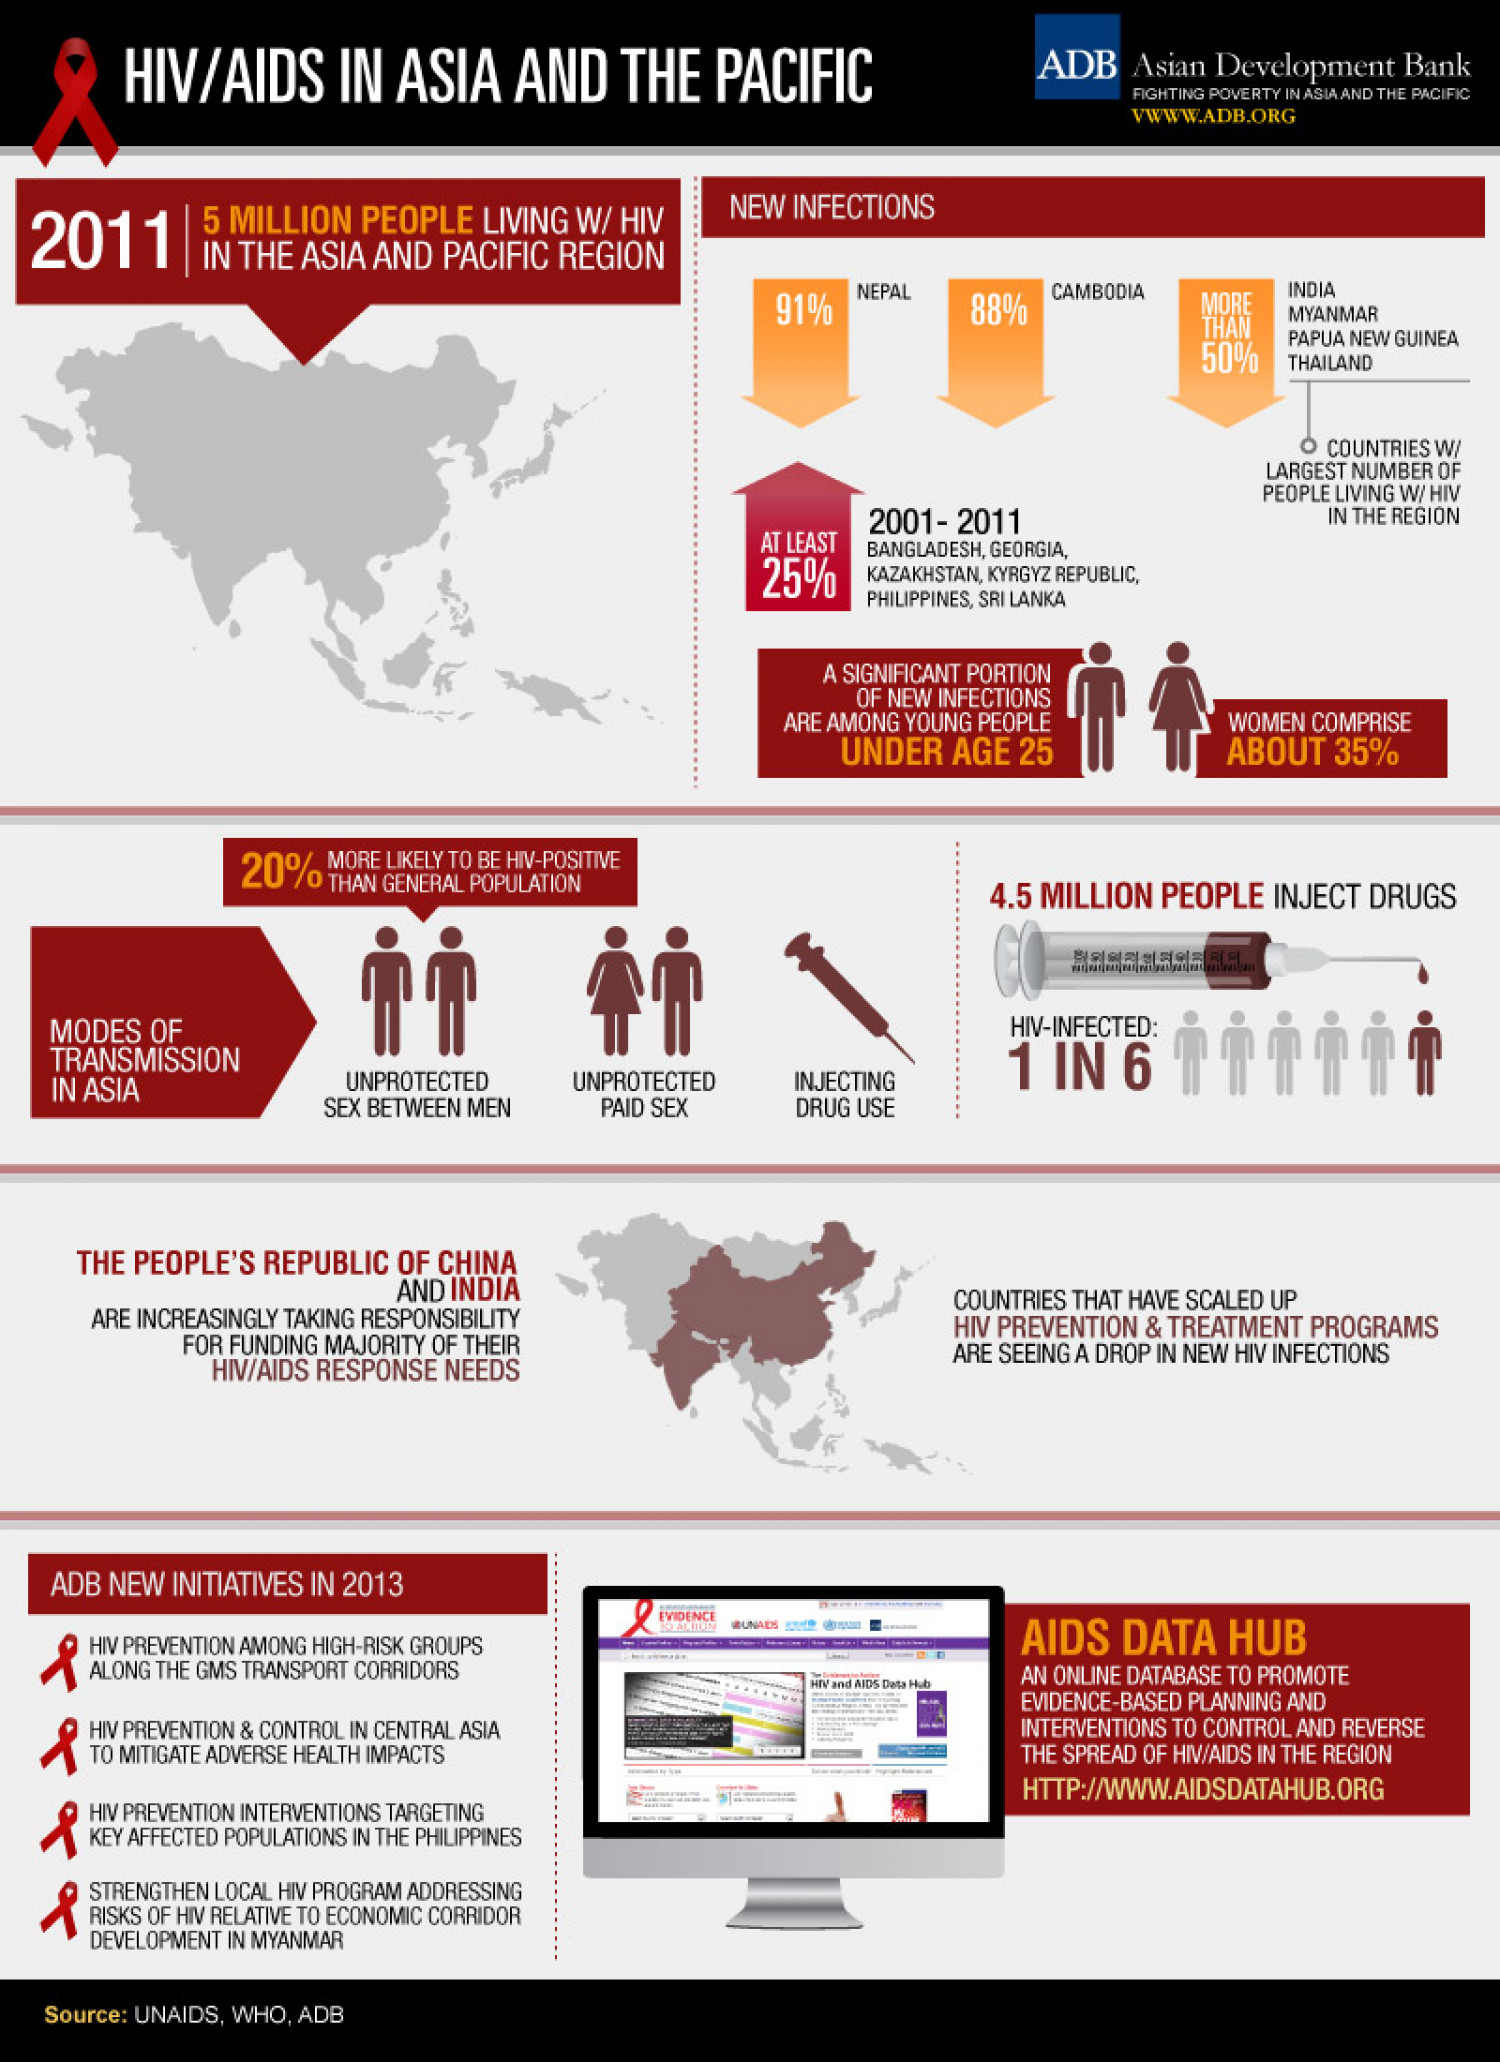 HIV/AIDS in Asia and the Pacific Infographic